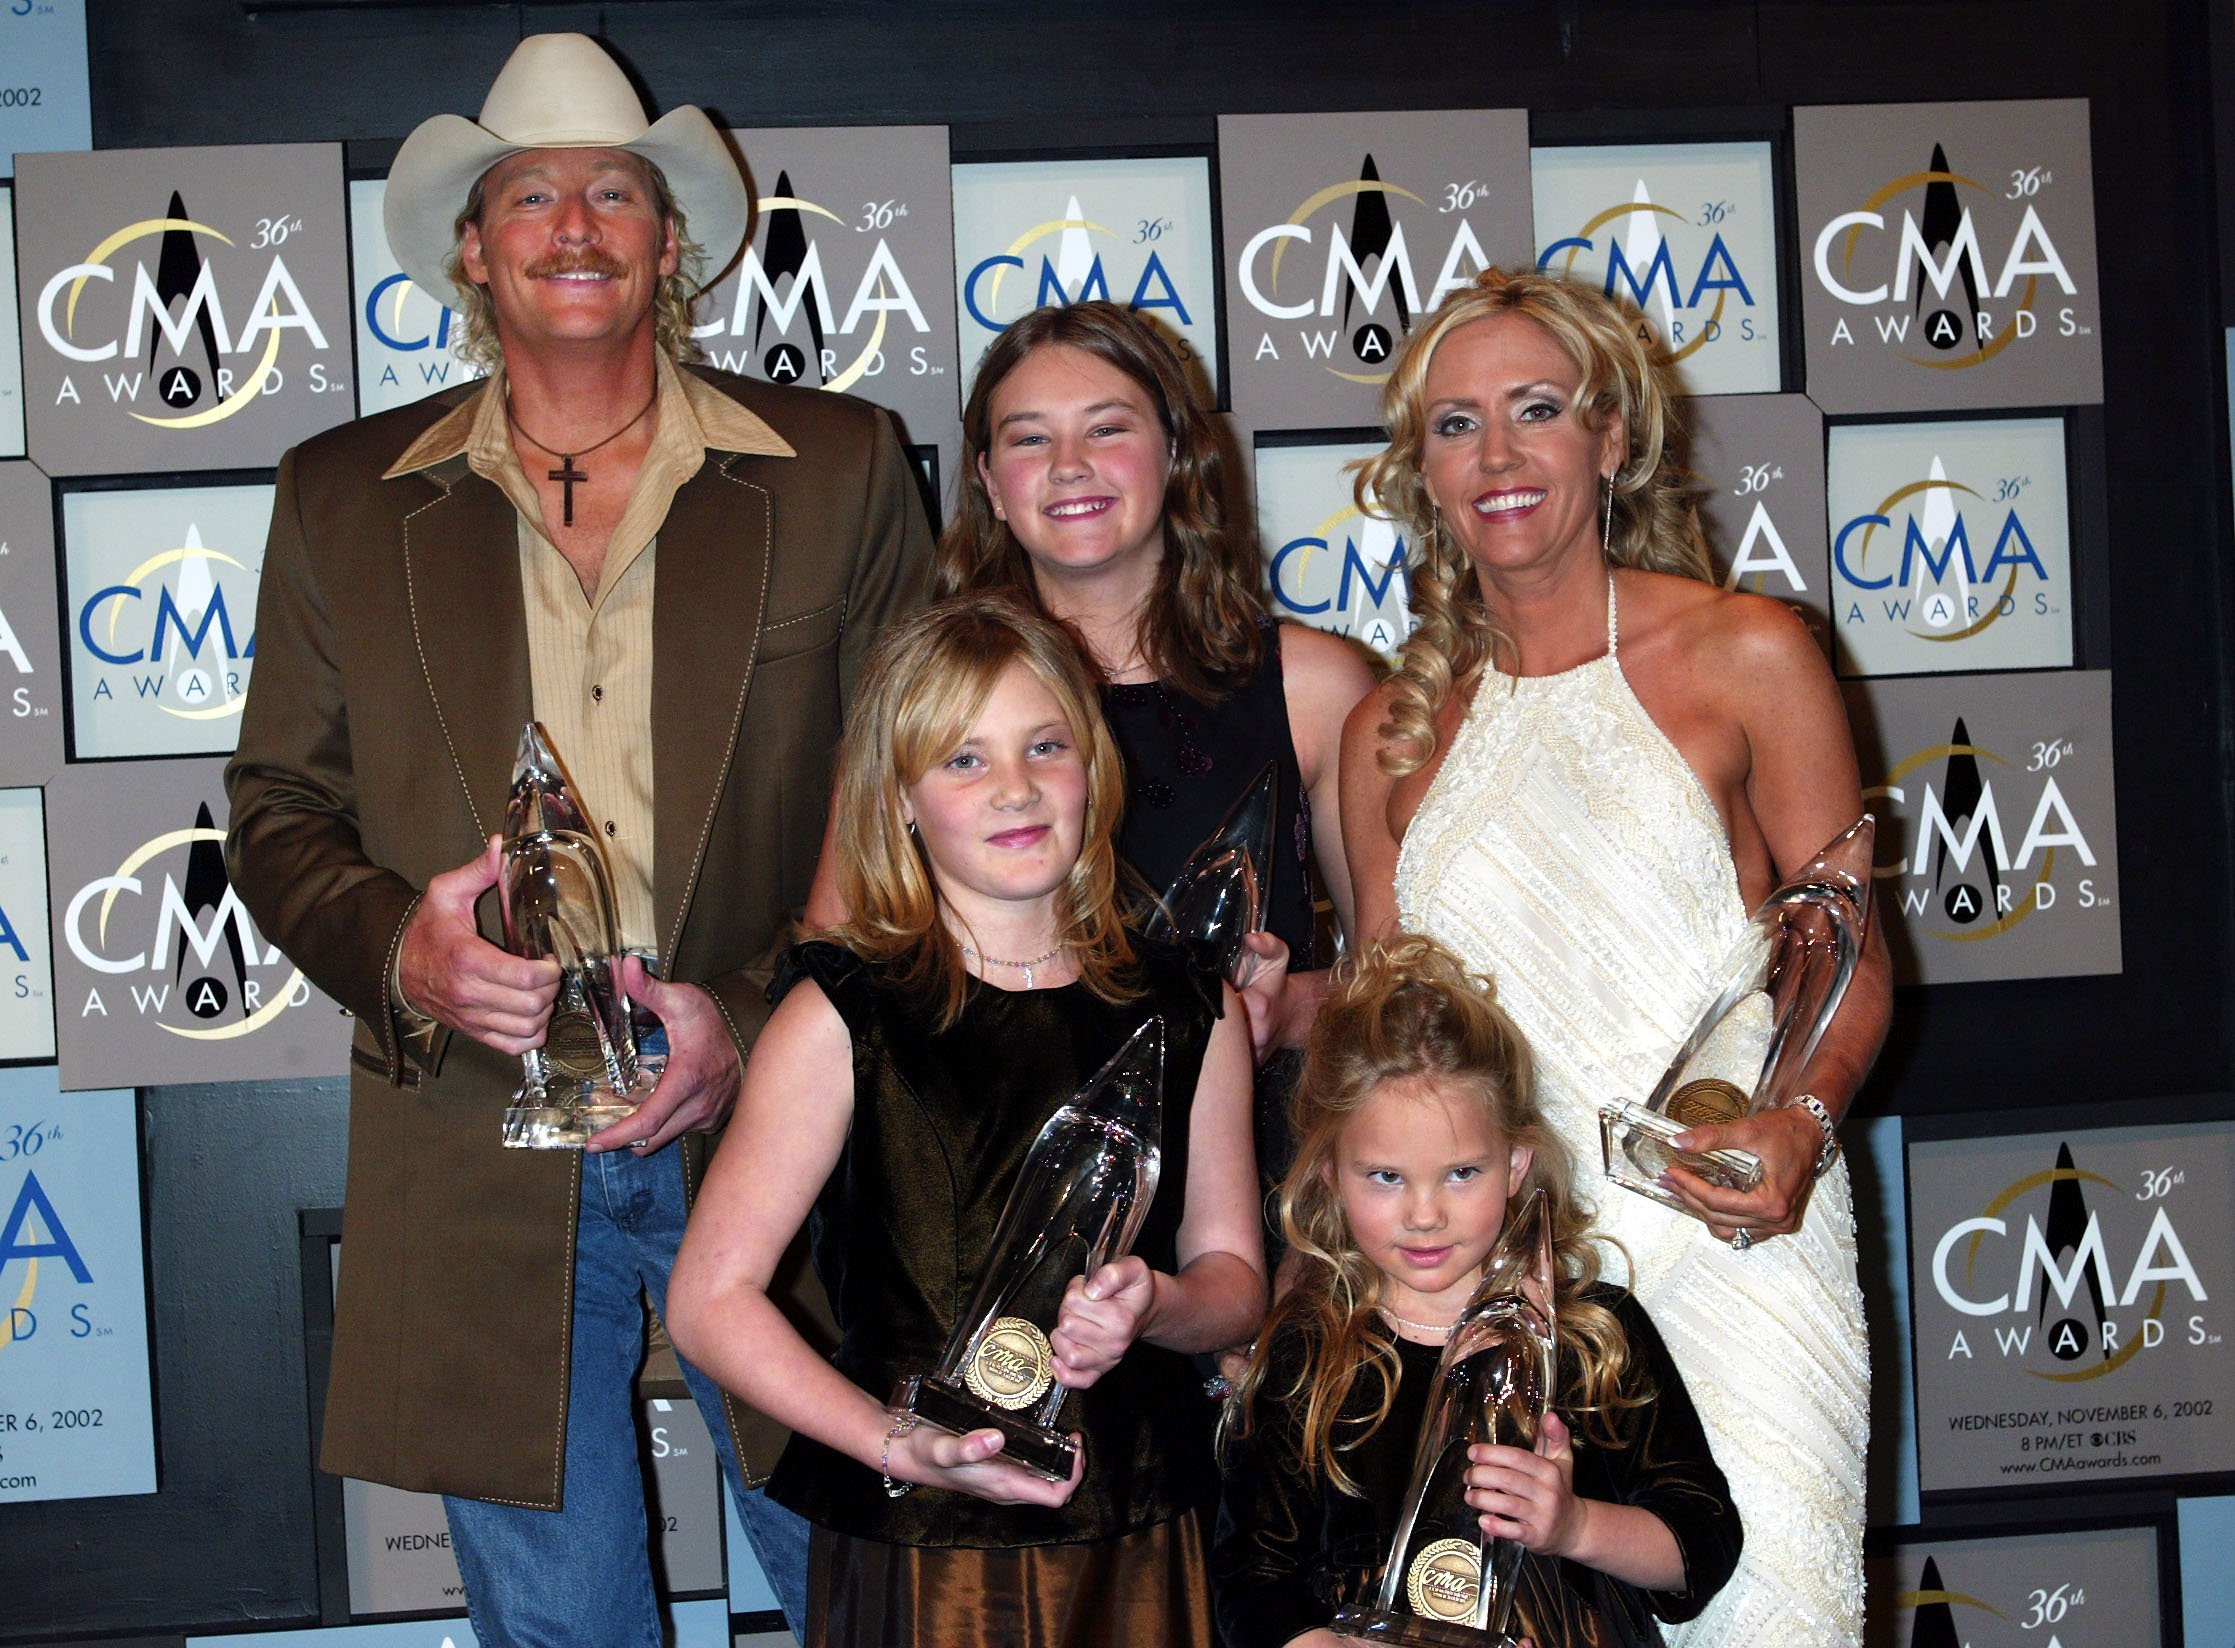 Alan, his wife Denise Jackson, and their three children at the Country Music Awards | Photo: Getty Images